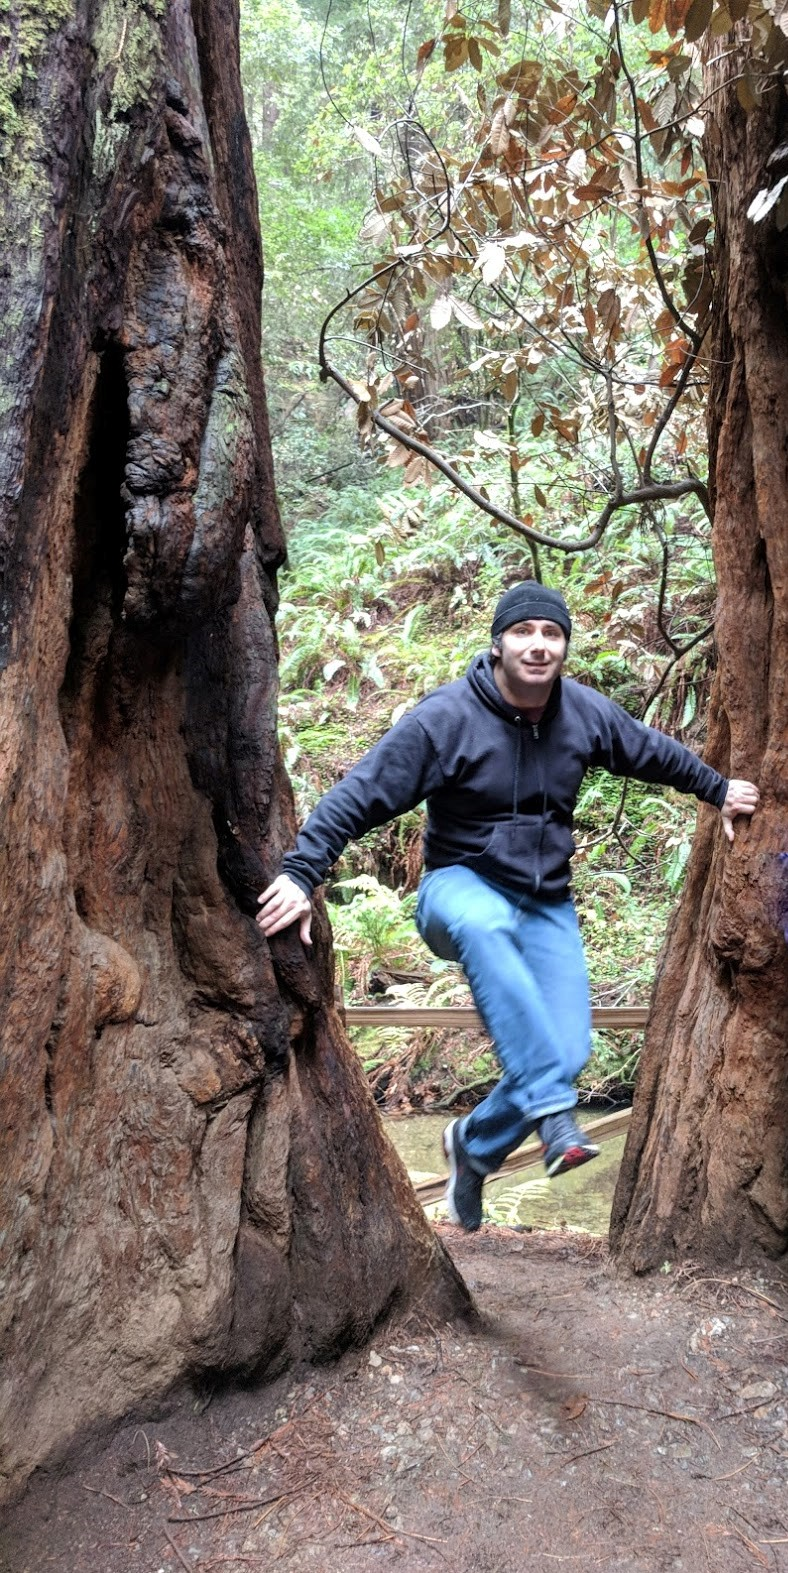 Journey_MuirWoods_Leap_Dec2018.jpg